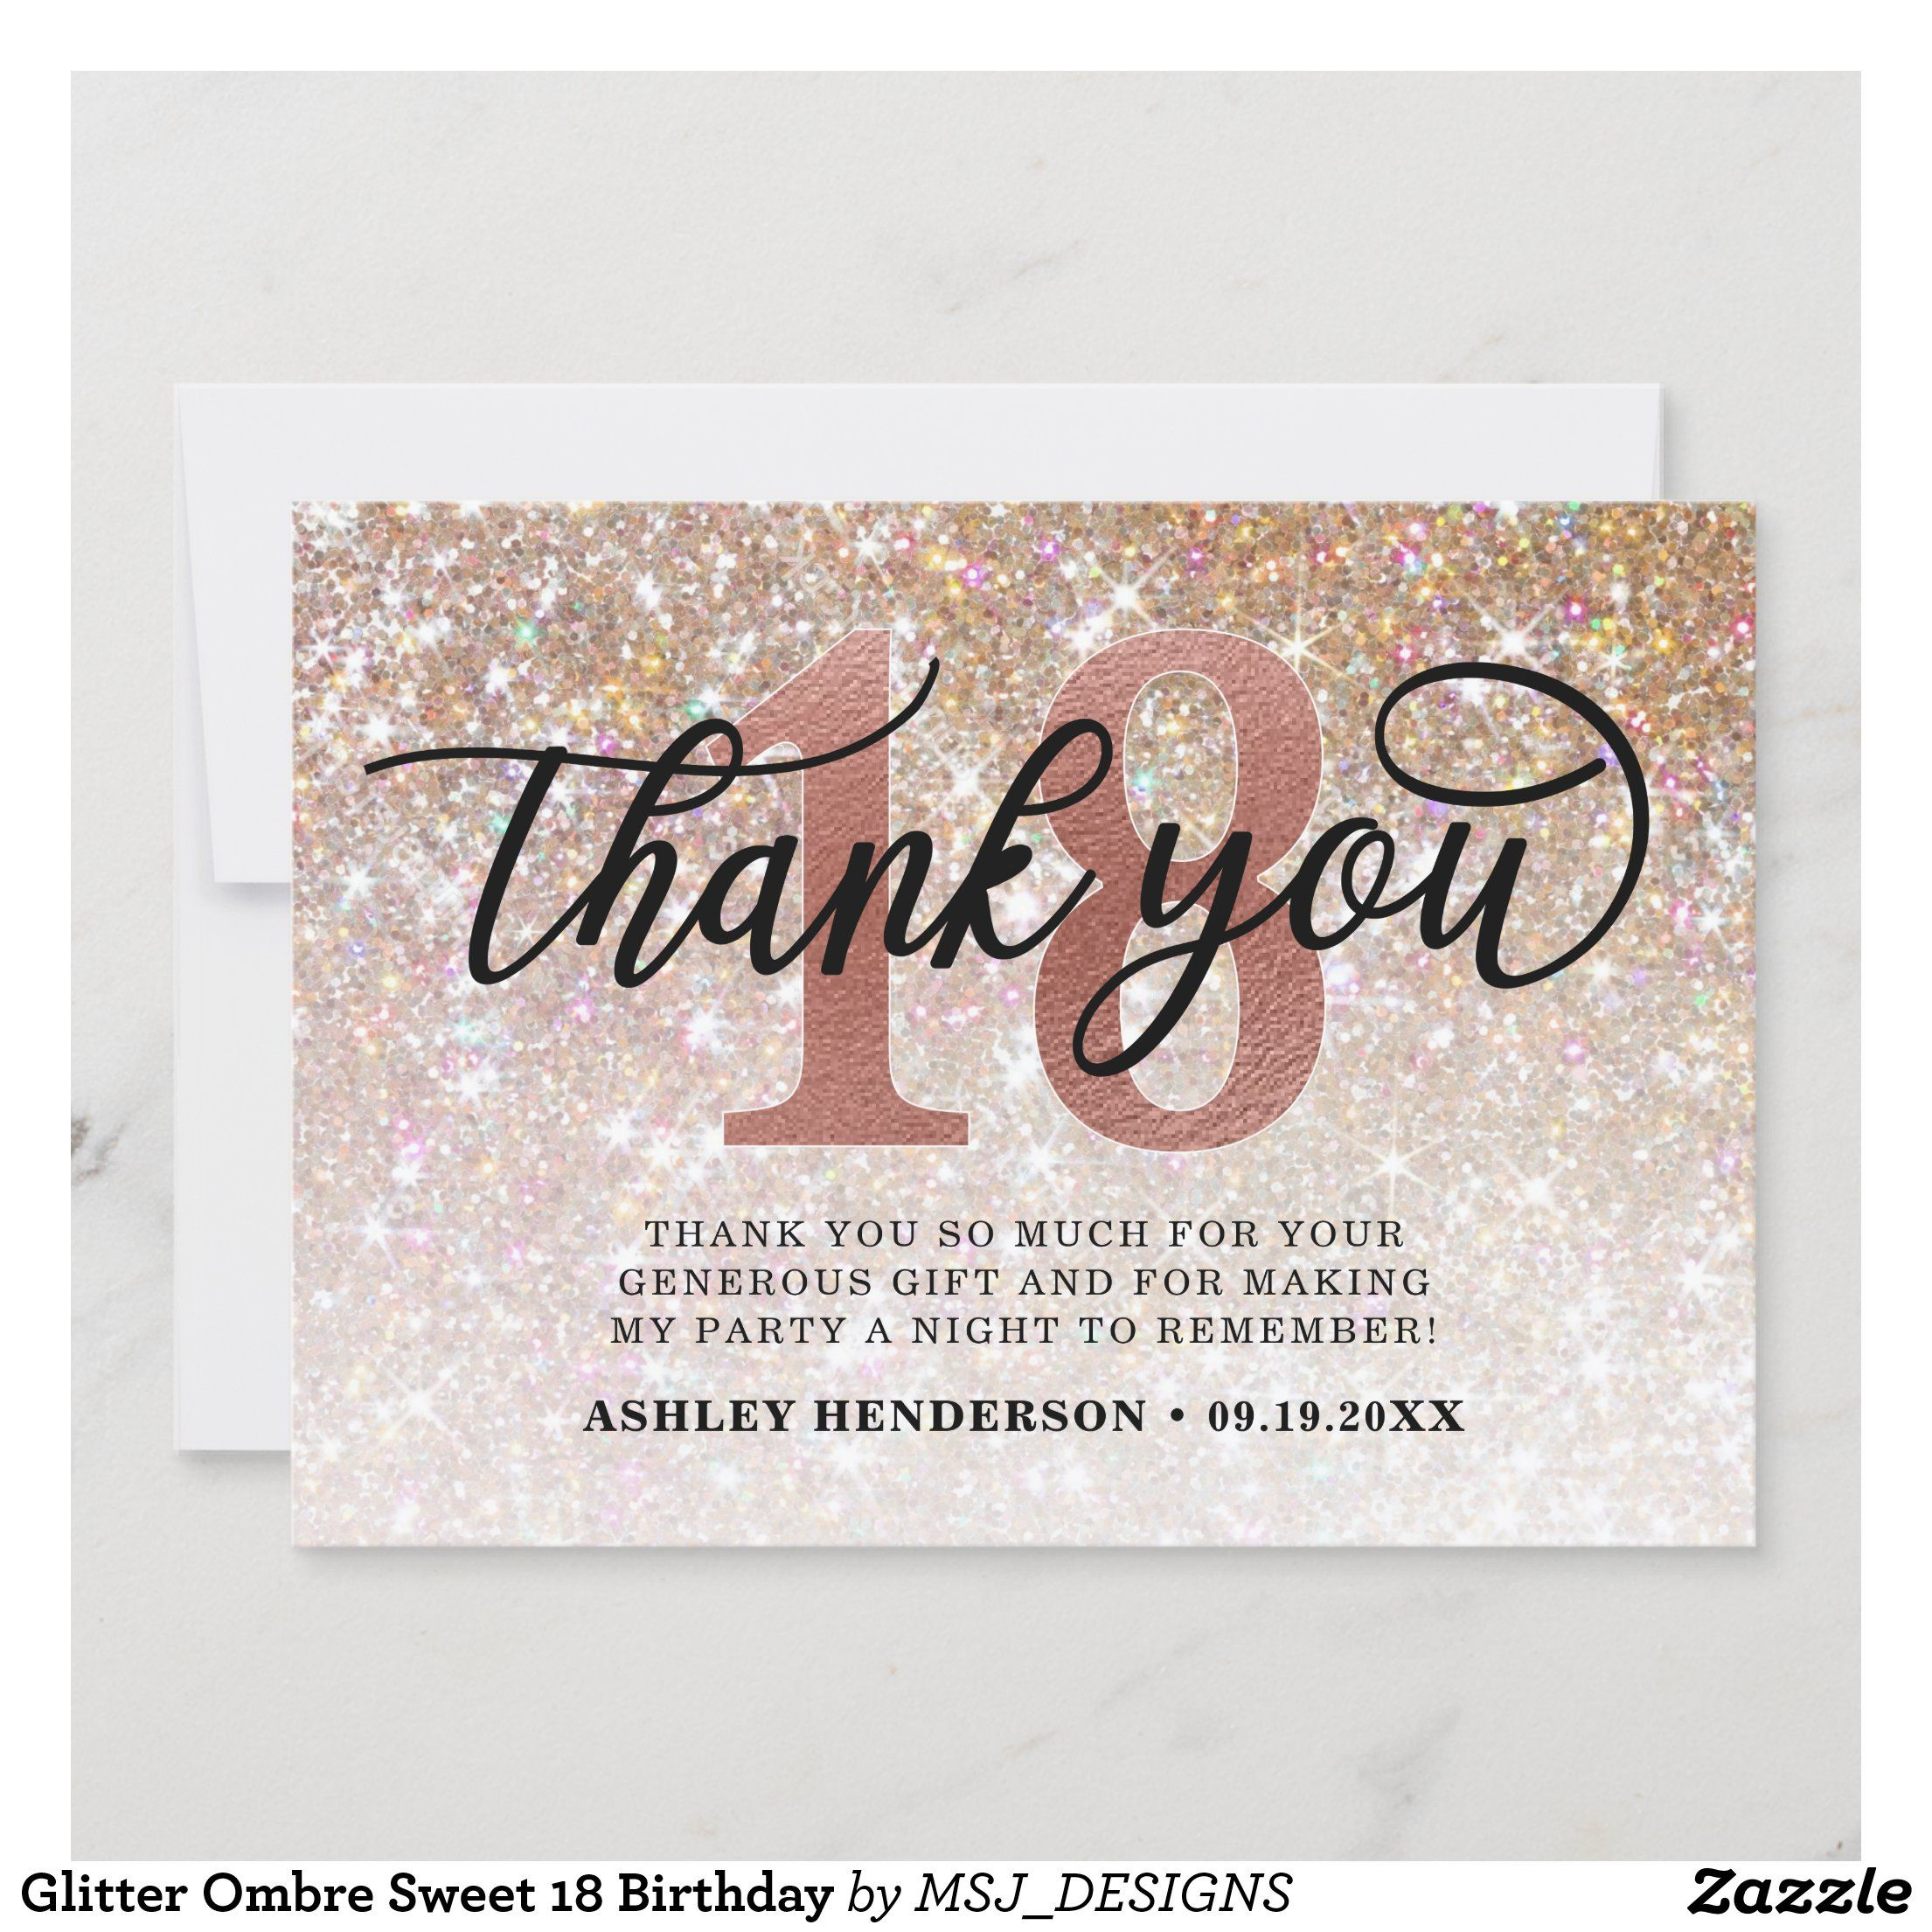 Glitter Ombre Sweet 18 Birthday Thank You Card Zazzle Com In 2021 Birthday Thank You Cards Birthday Thank You Thank You Card Size